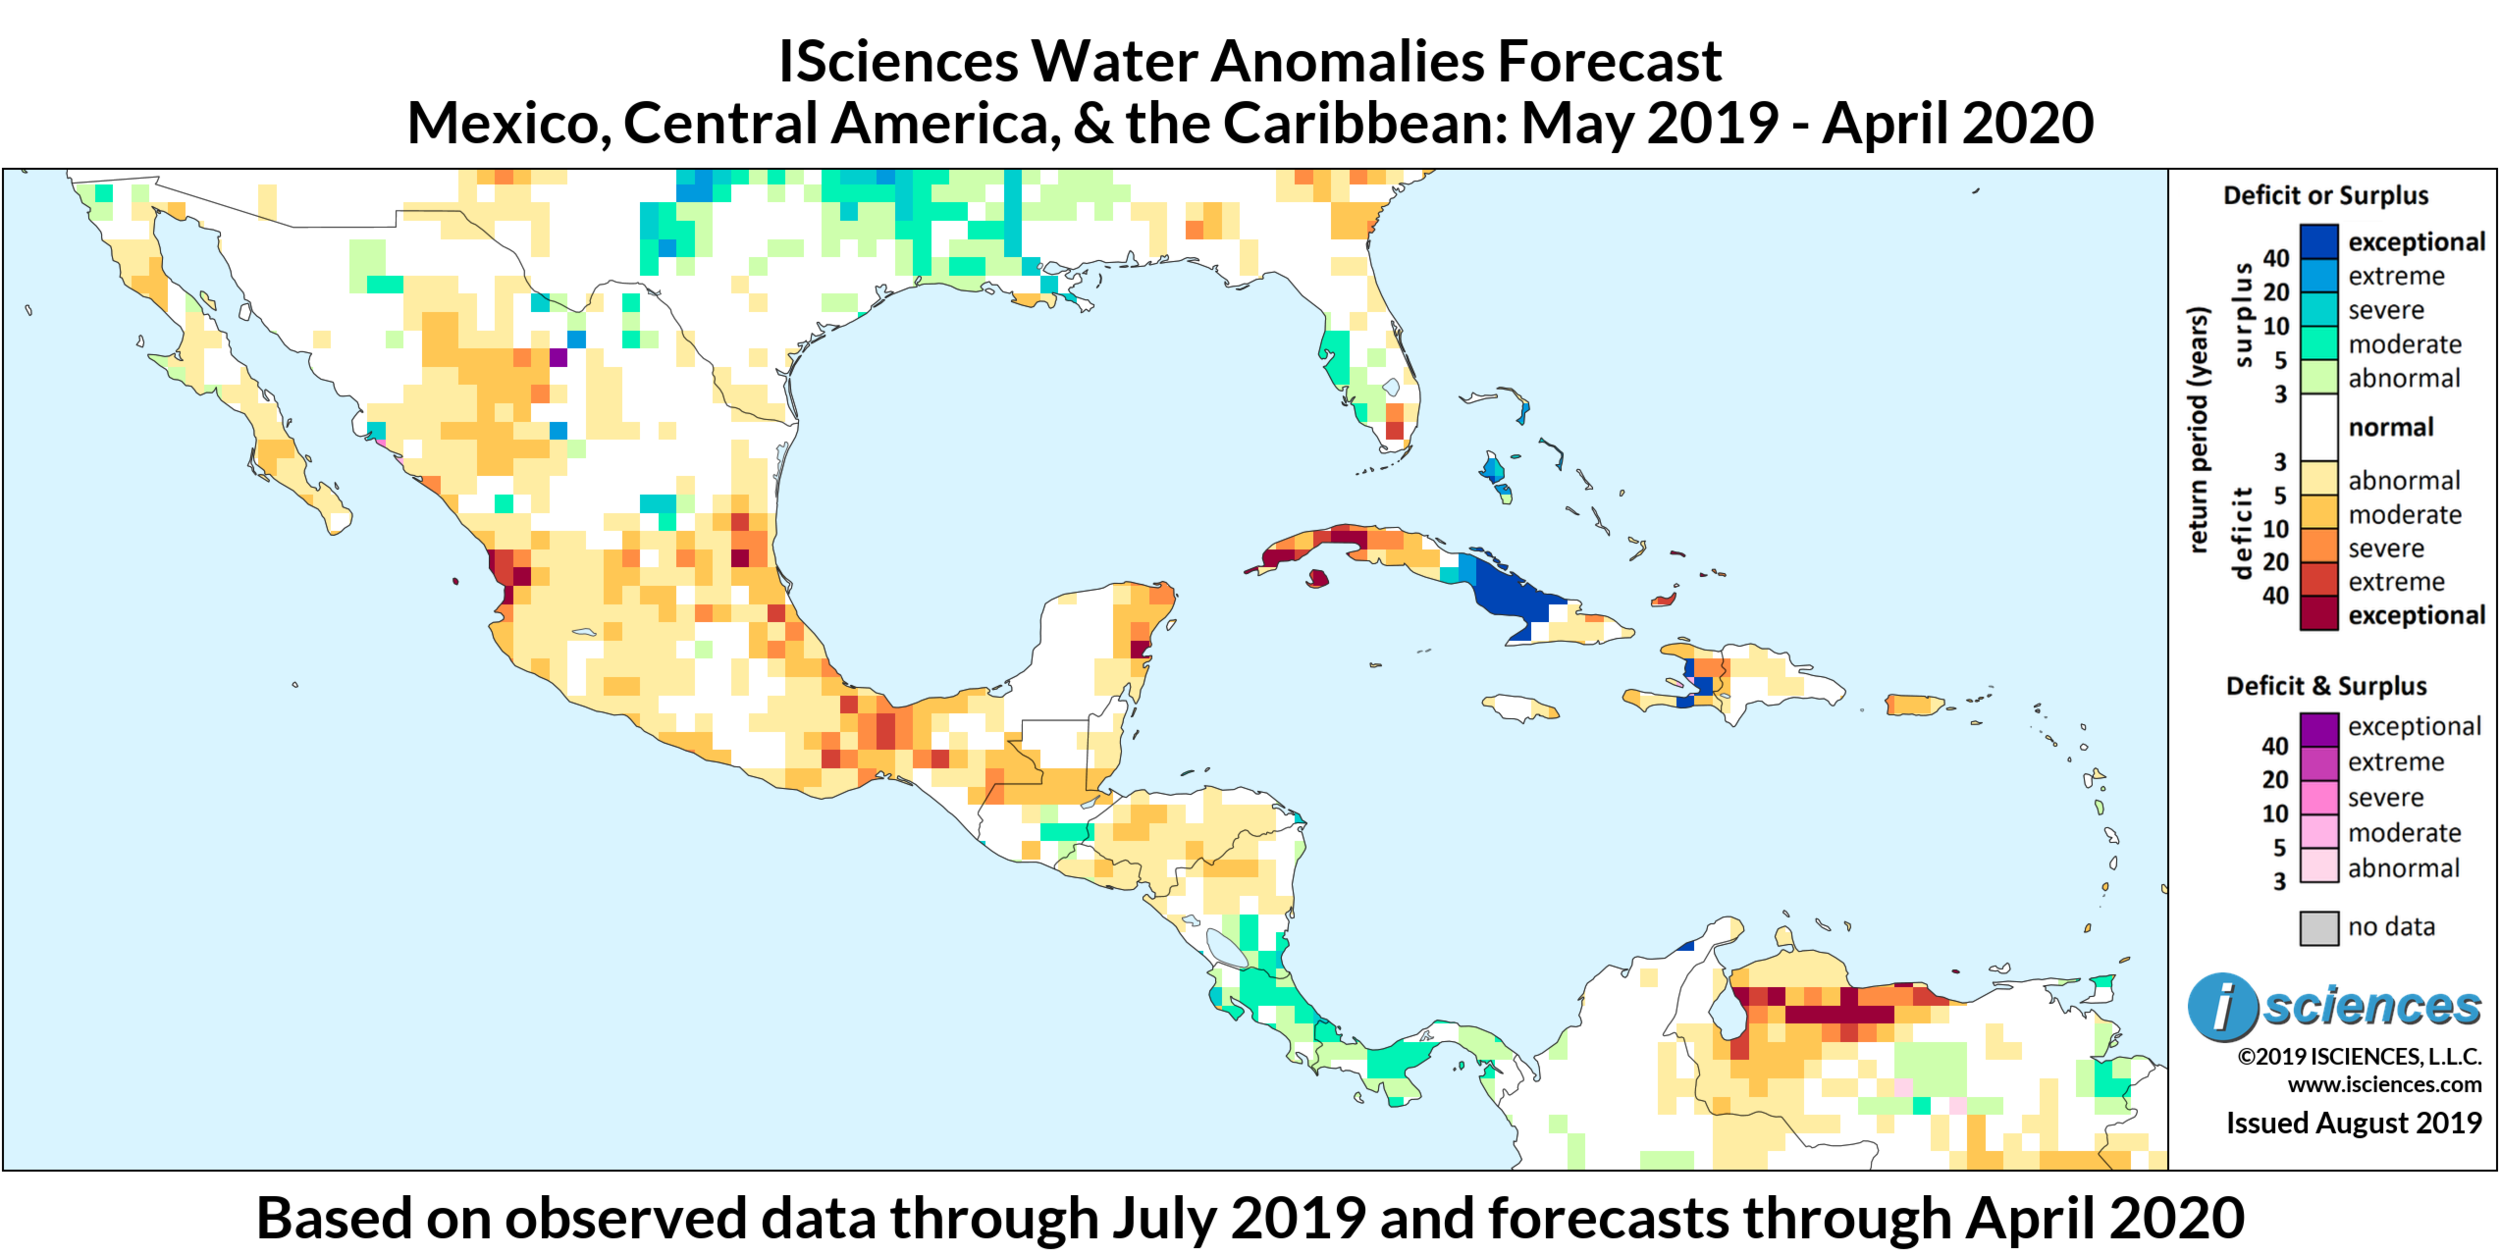 ISciences_Mexico_Central_America_Caribbean_Composite_Adjusted_201905-202004_12mo_panel.png